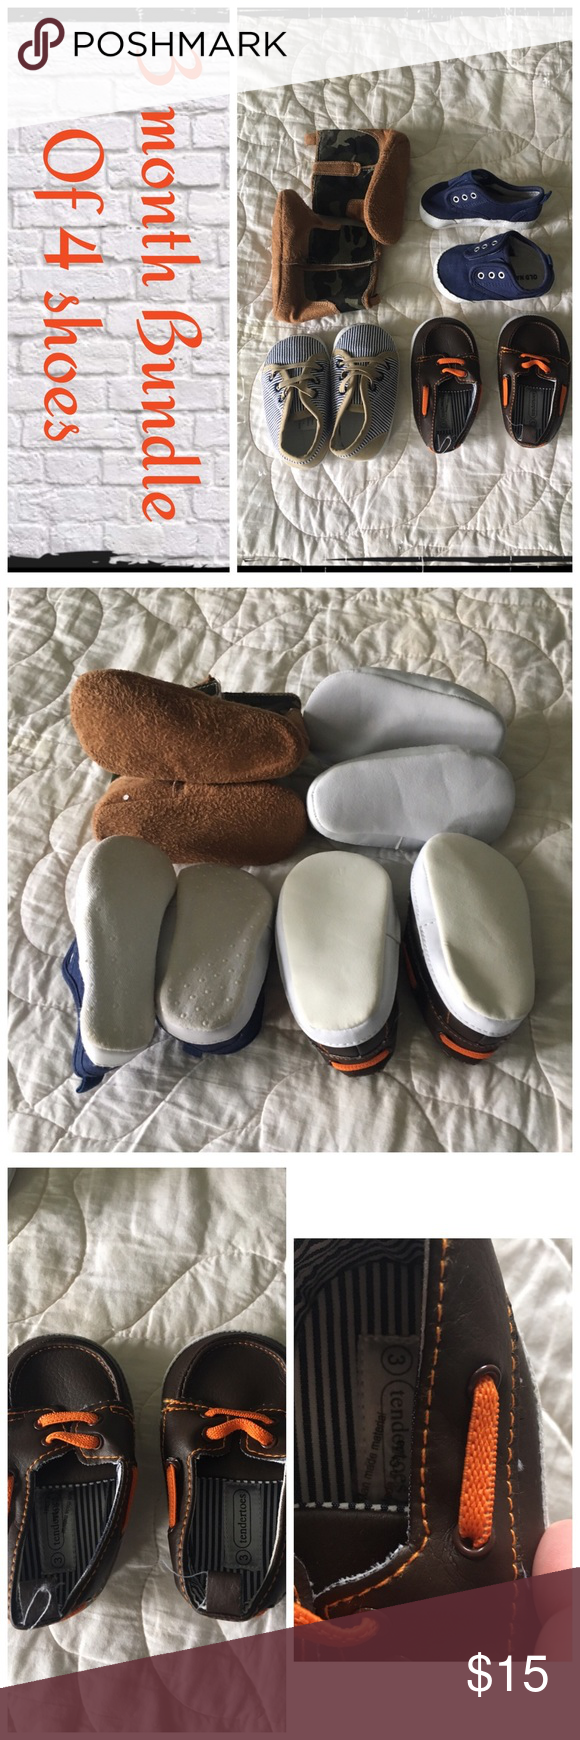 Boys size 3 shoe bundle of 4 pair Gently worn, normal wash wear. EUC.                                  ❇️ There could be some small stains/blemishes I missed, but I try to note everything.😘.                          ❇️ Reasonable Offers Only Please ❇️ Smoke and pet free ❇️ If this is a bundle, I WILL NOT break it up and sell    separately ❇️ I do not model anything; I will provide measurements if needed.  ❇️ Please do not hesitate to ask questions, 👍.         ❇️ NO HOLDS, NO TRADES, POSH…